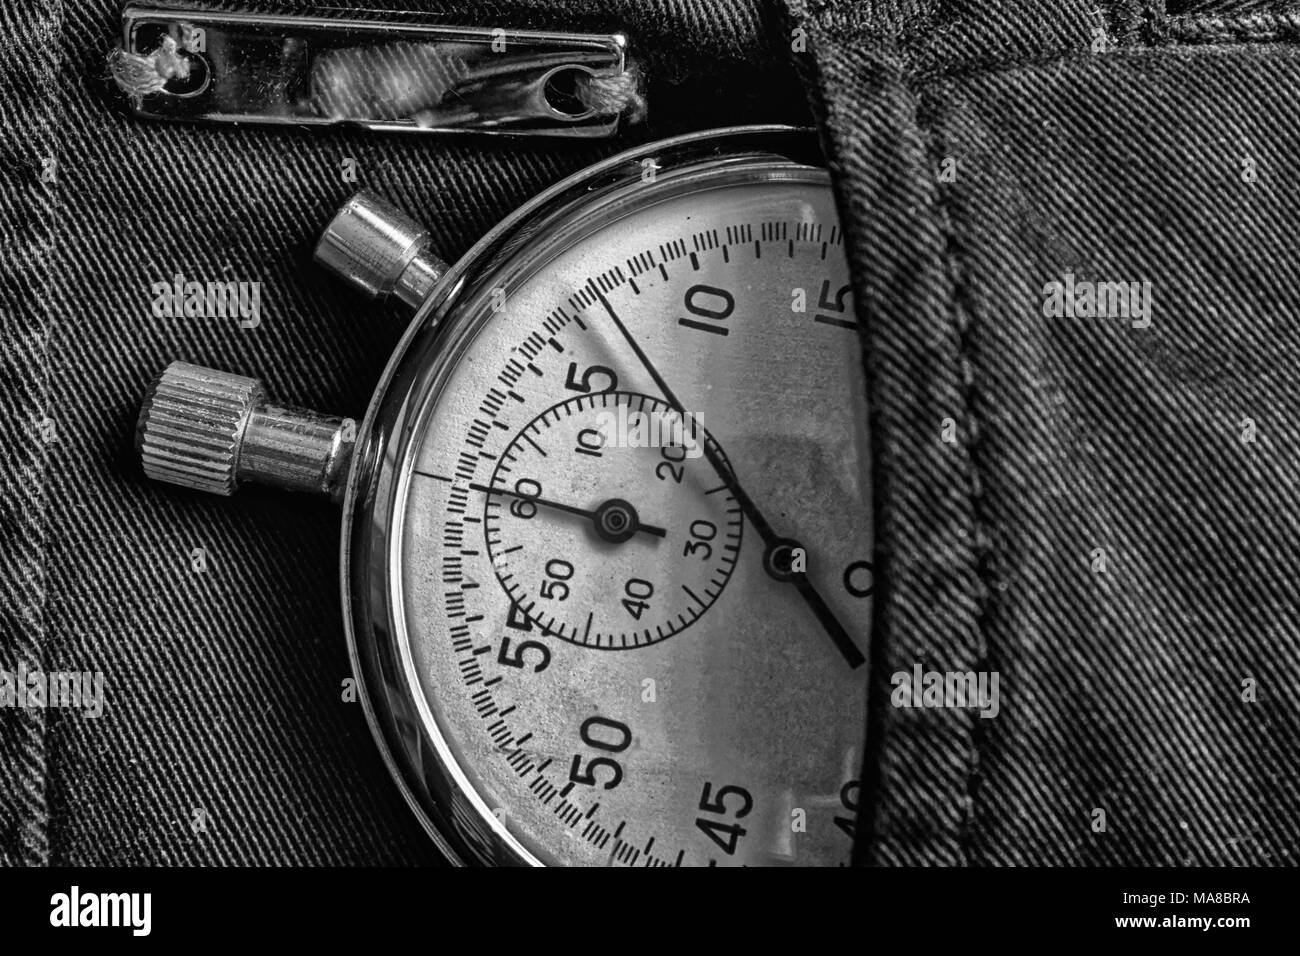 Vintage Antiques Stopwatch In Black Denim Pocket With Reflection Plank Value Measure Time Old Clock Arrow Minute Second Accuracy Timer Record